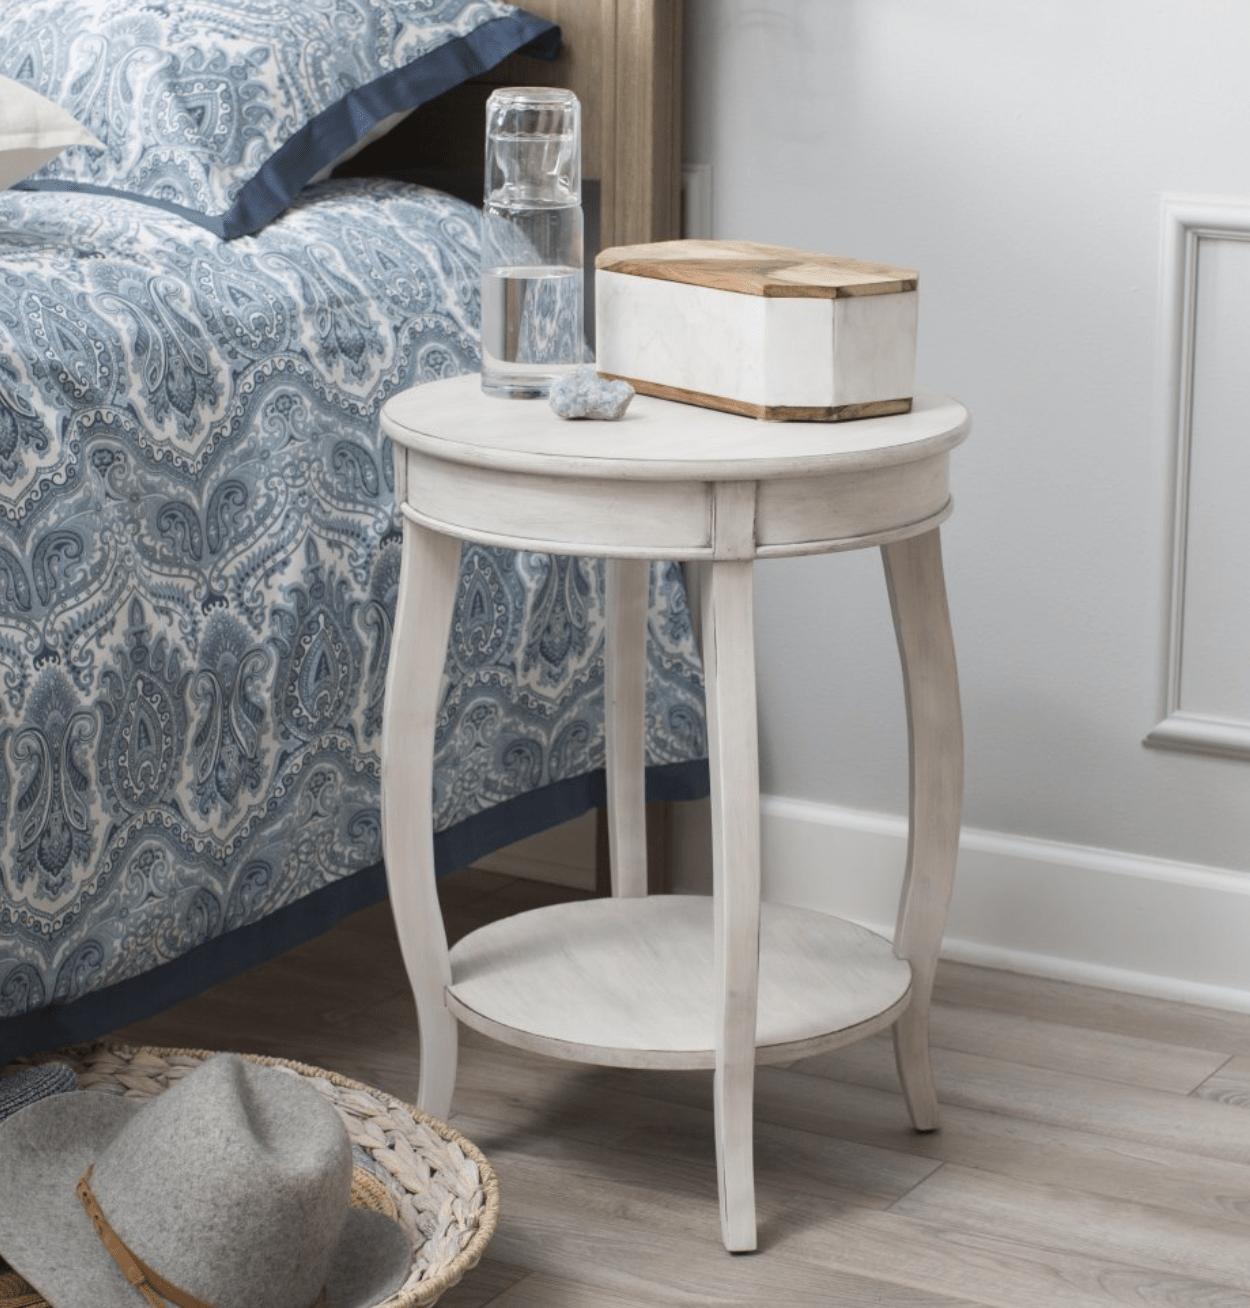 lovely small accent table for white round bedroom min sasha compact with lower and upper shelf side ikea wall storage bins rustic coffee toronto island bar stools black